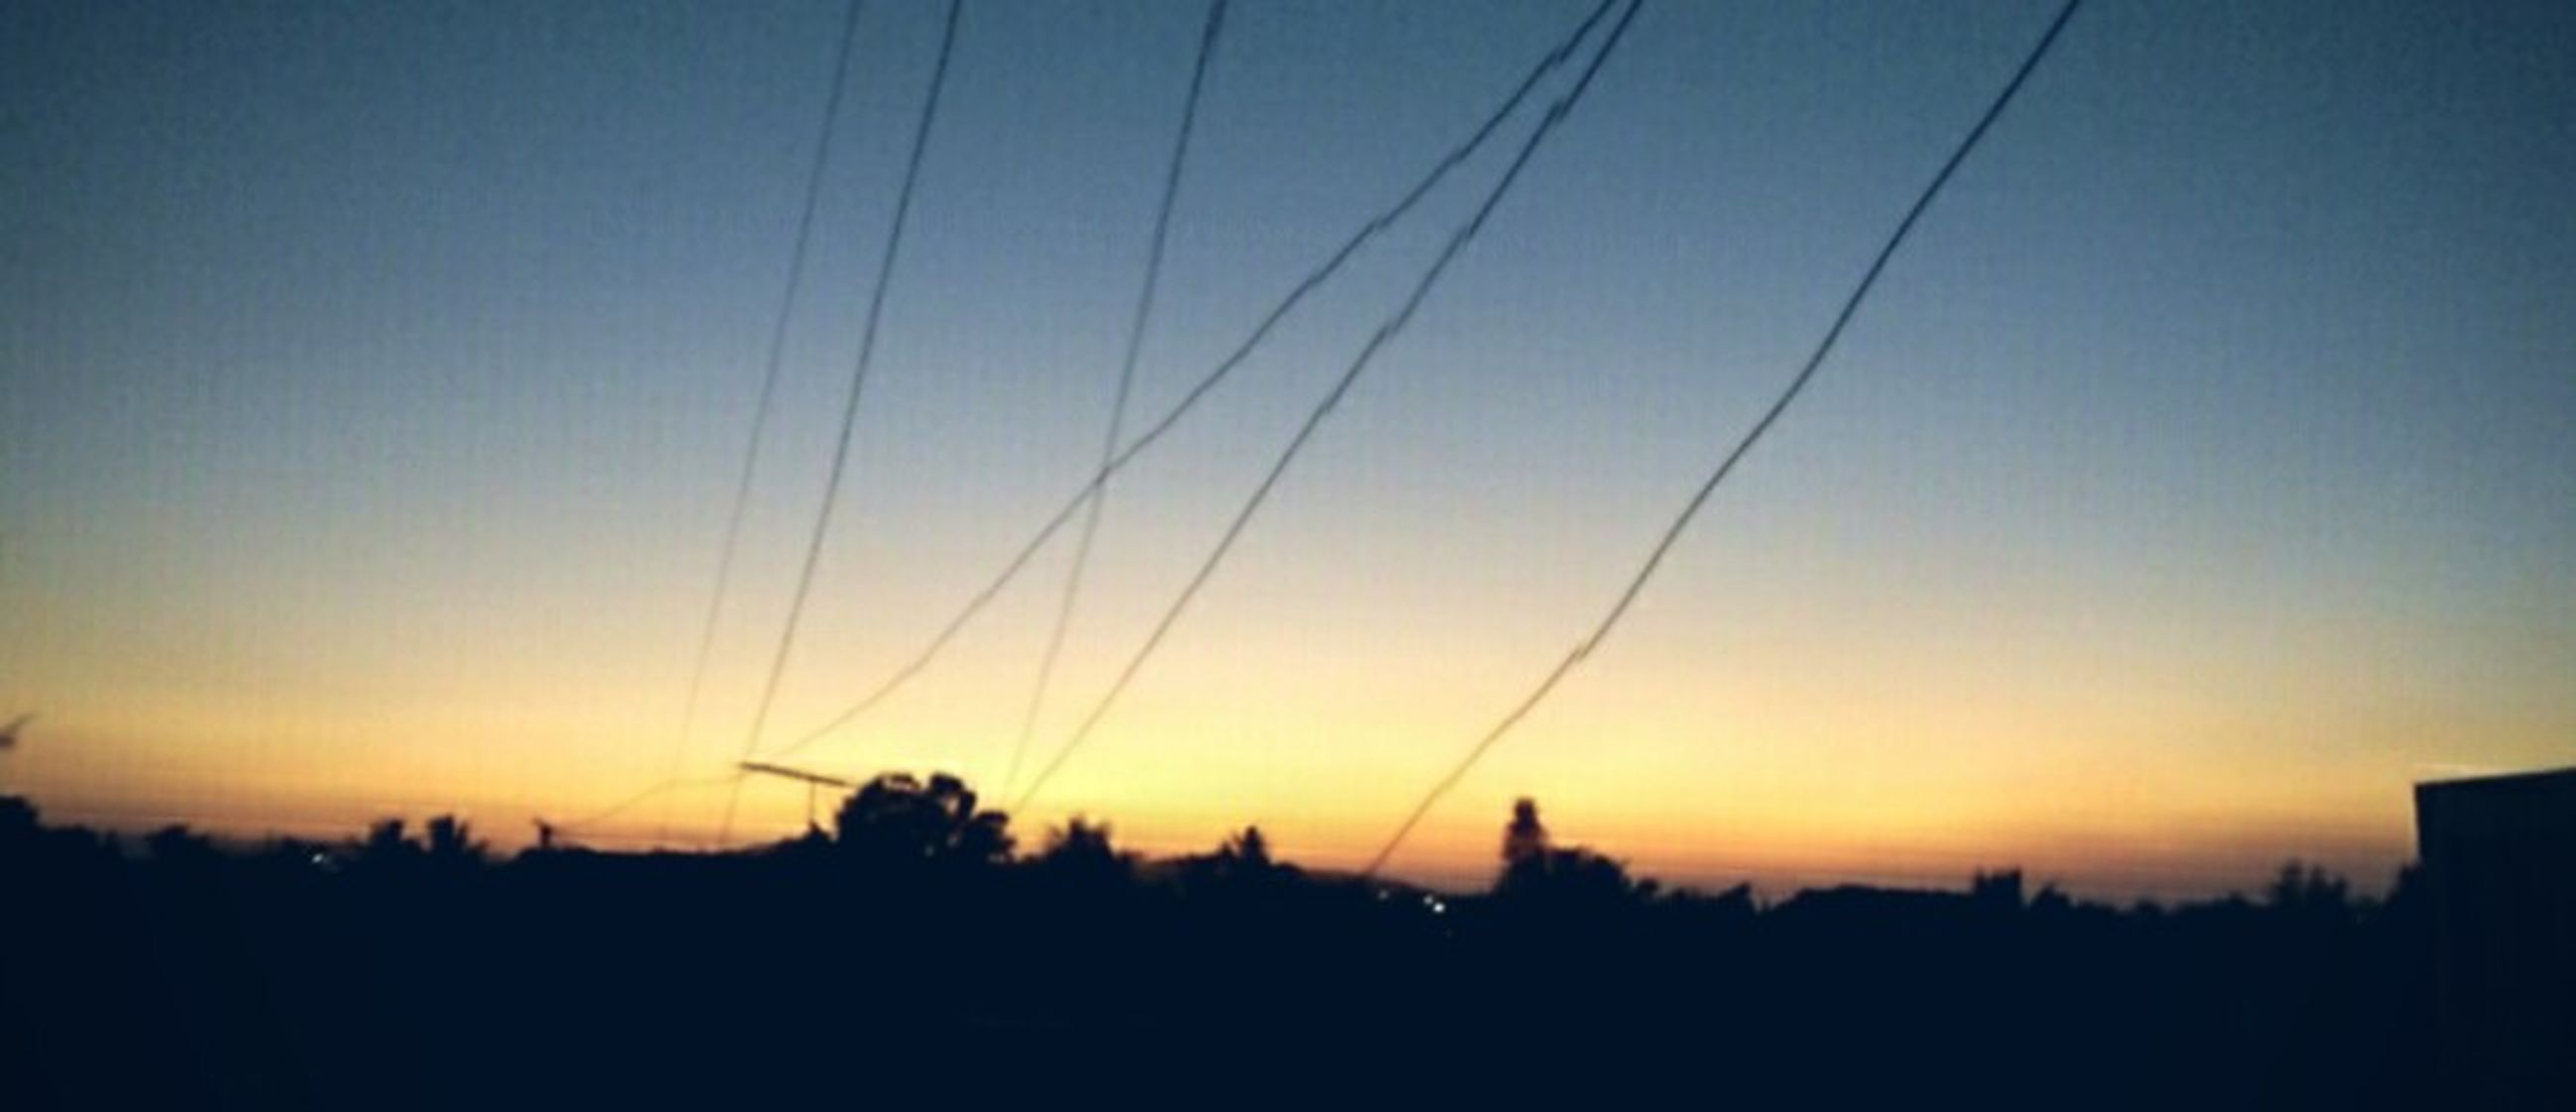 silhouette, sunset, scenics, beauty in nature, tranquility, tranquil scene, orange color, power line, tree, sky, copy space, nature, clear sky, idyllic, electricity pylon, landscape, dark, dusk, no people, electricity